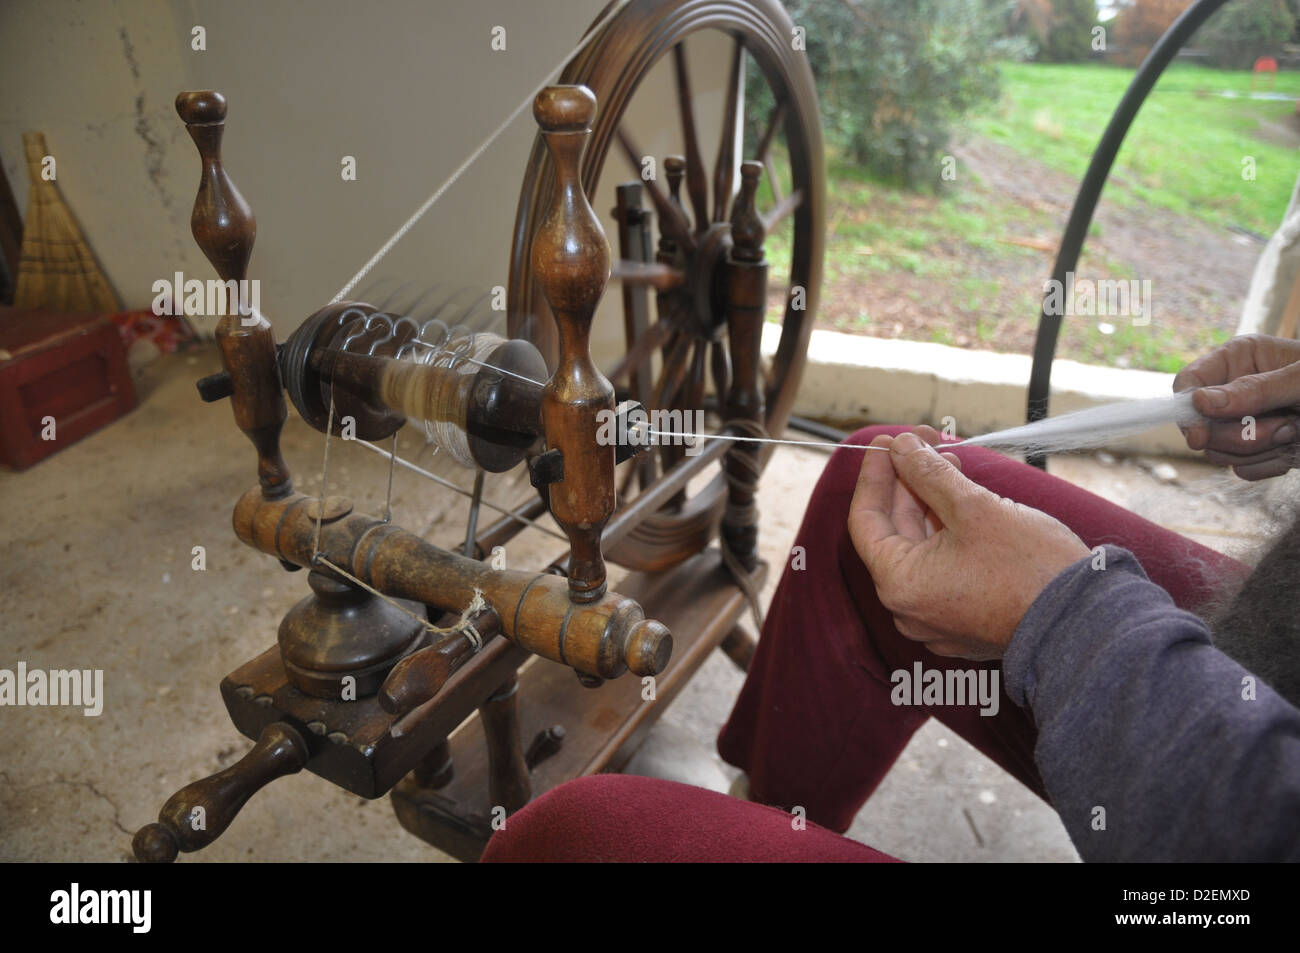 Old Fashioned manual wool spinning wheel - Stock Image